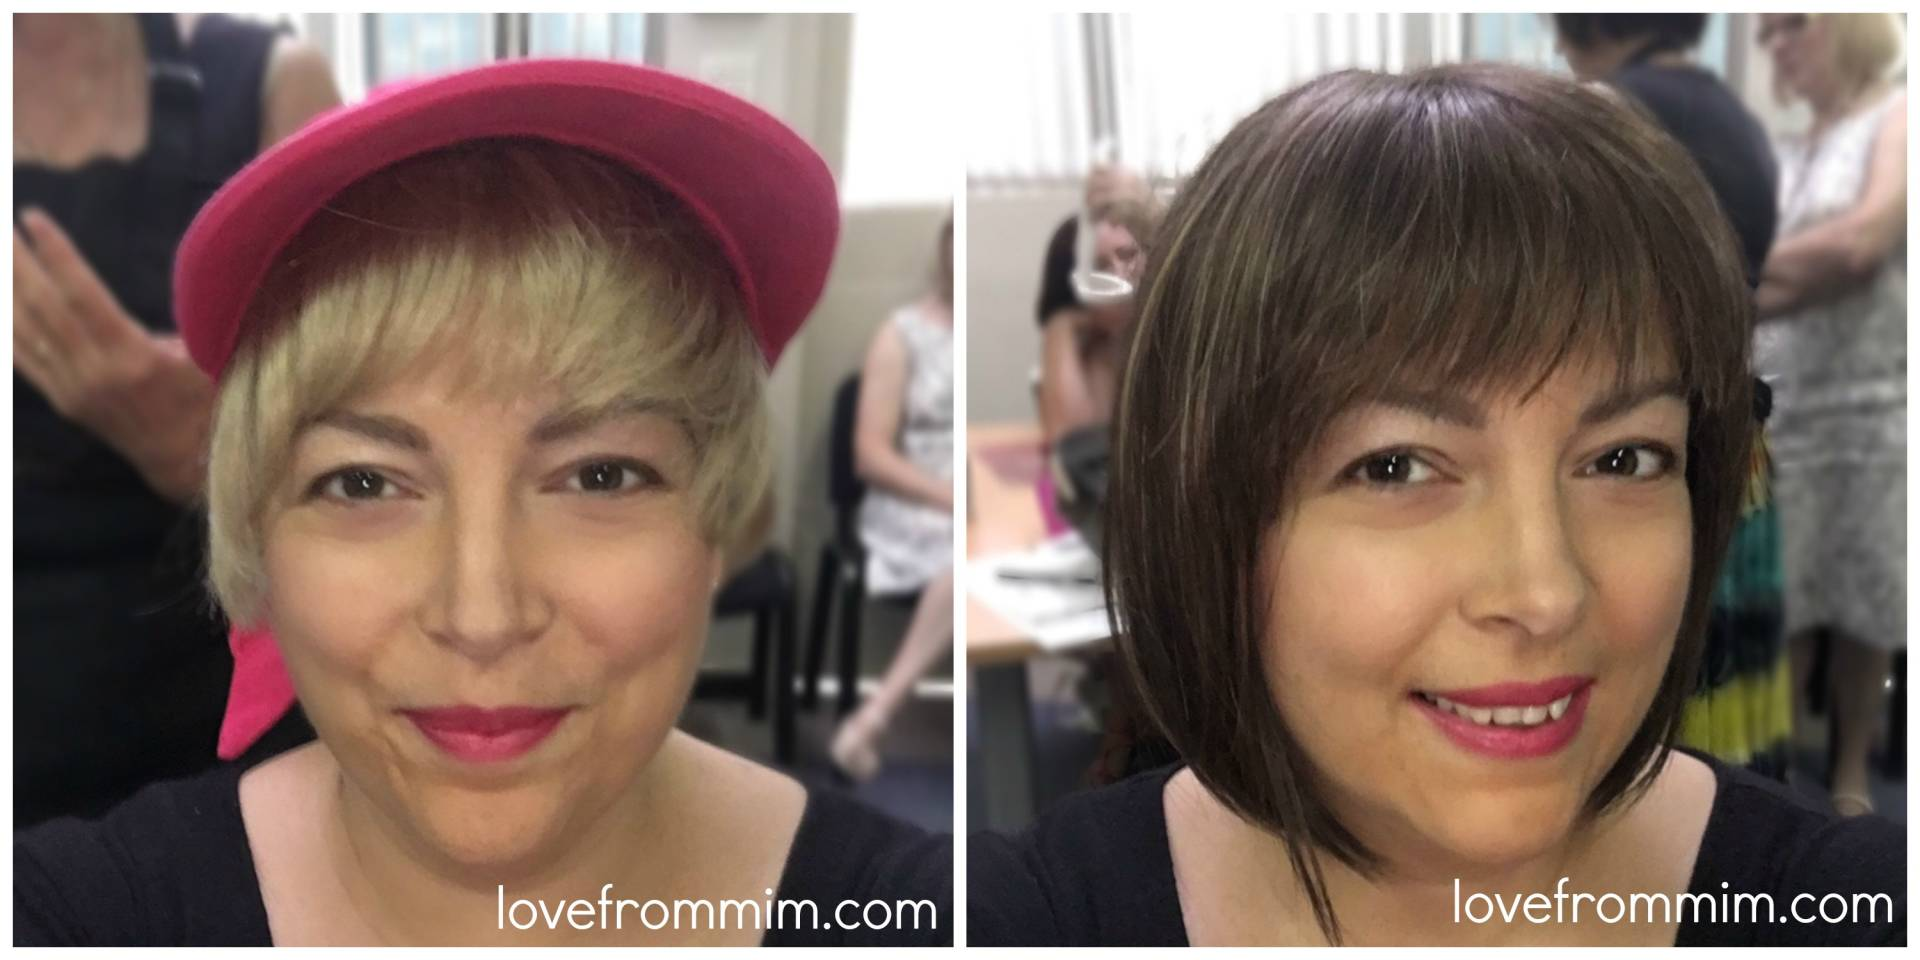 Look Good Feel Better - www.lovefrommim.com - Cancer Treatment Chemotherapy Radiotherapy Radiation How to look good and feel better Make Up Wigs Headgear Hats